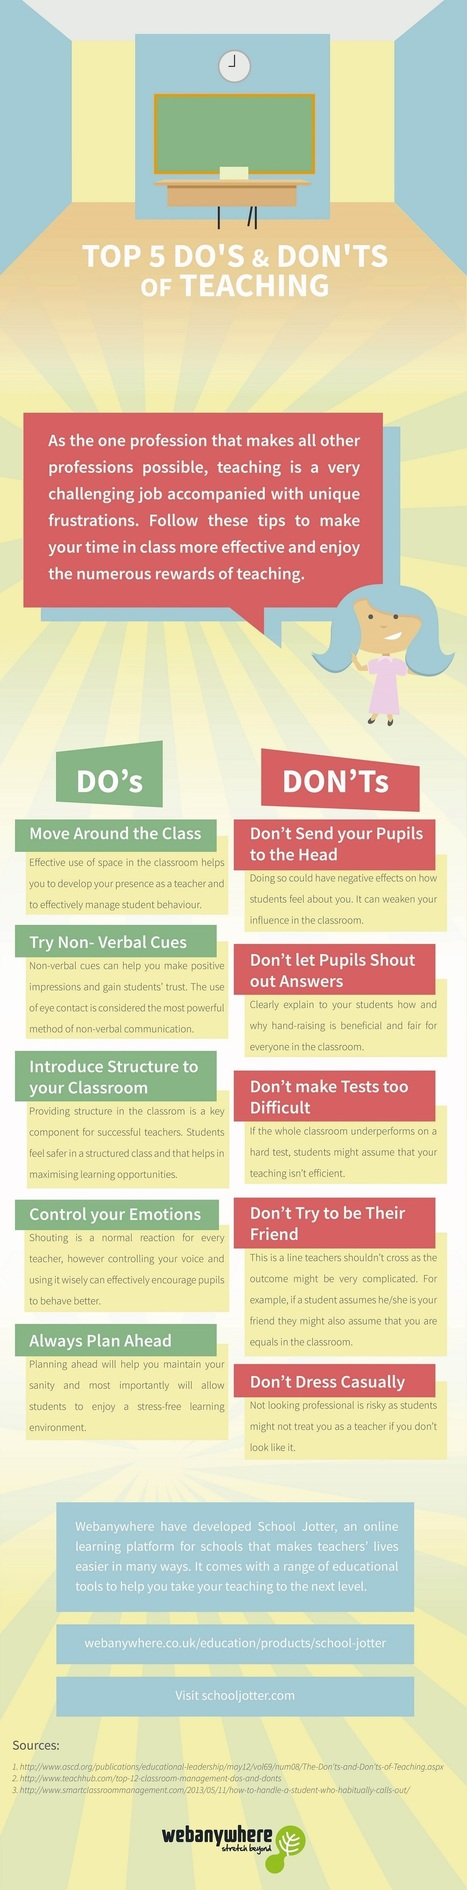 Top 5 Do's & Don'ts of Teaching Infographic - e-Learning Infographics   Education Technologies   Scoop.it   Scoop.it